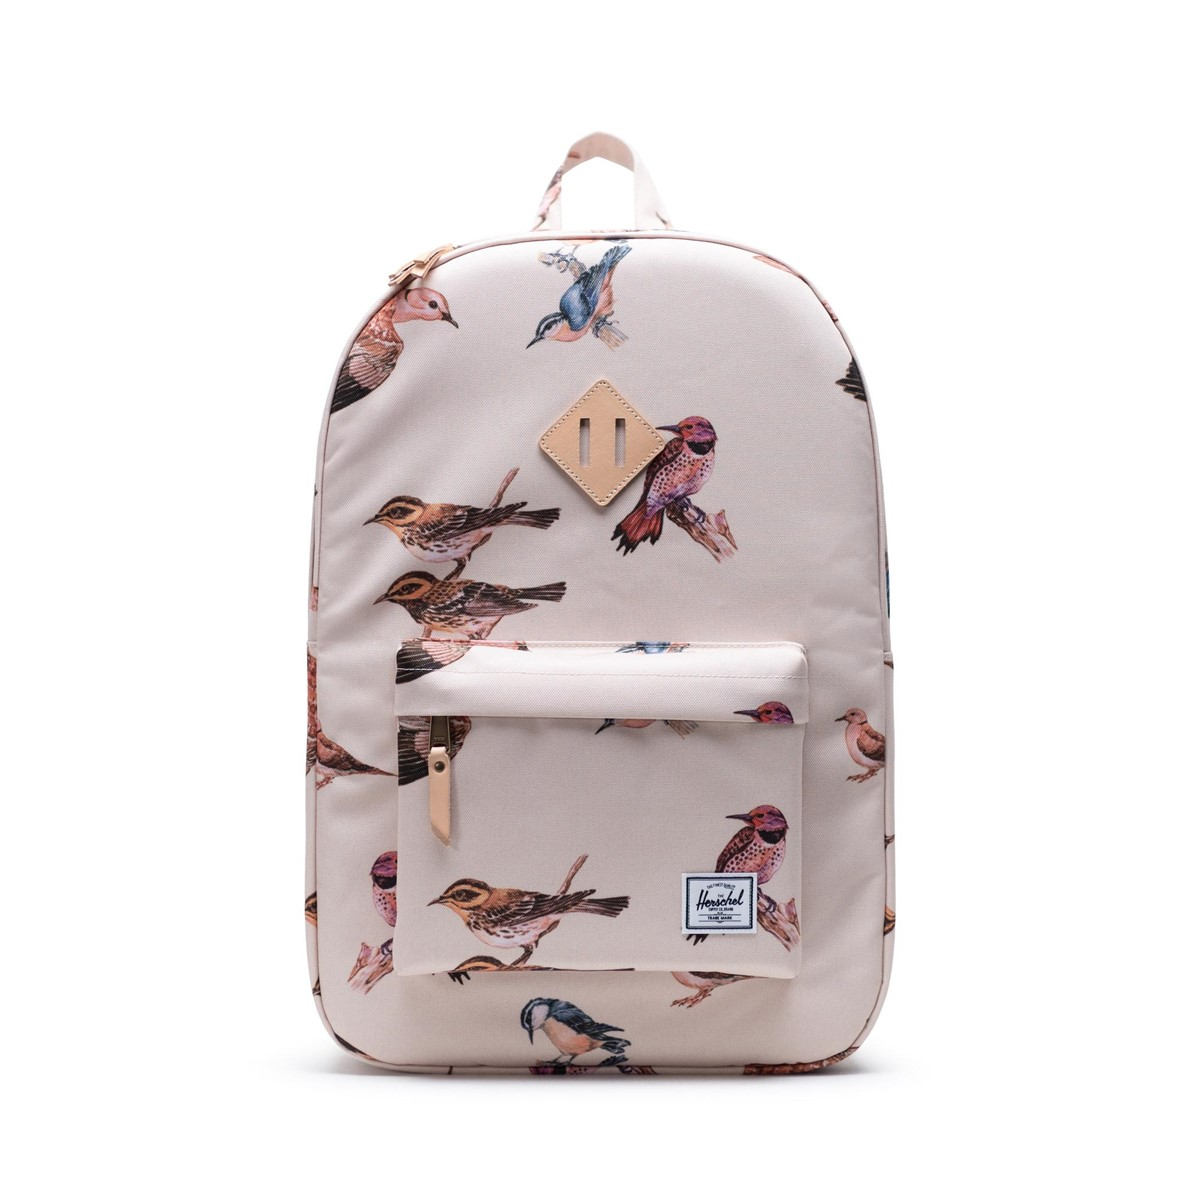 Bird Print Heritage Backpack in Cream